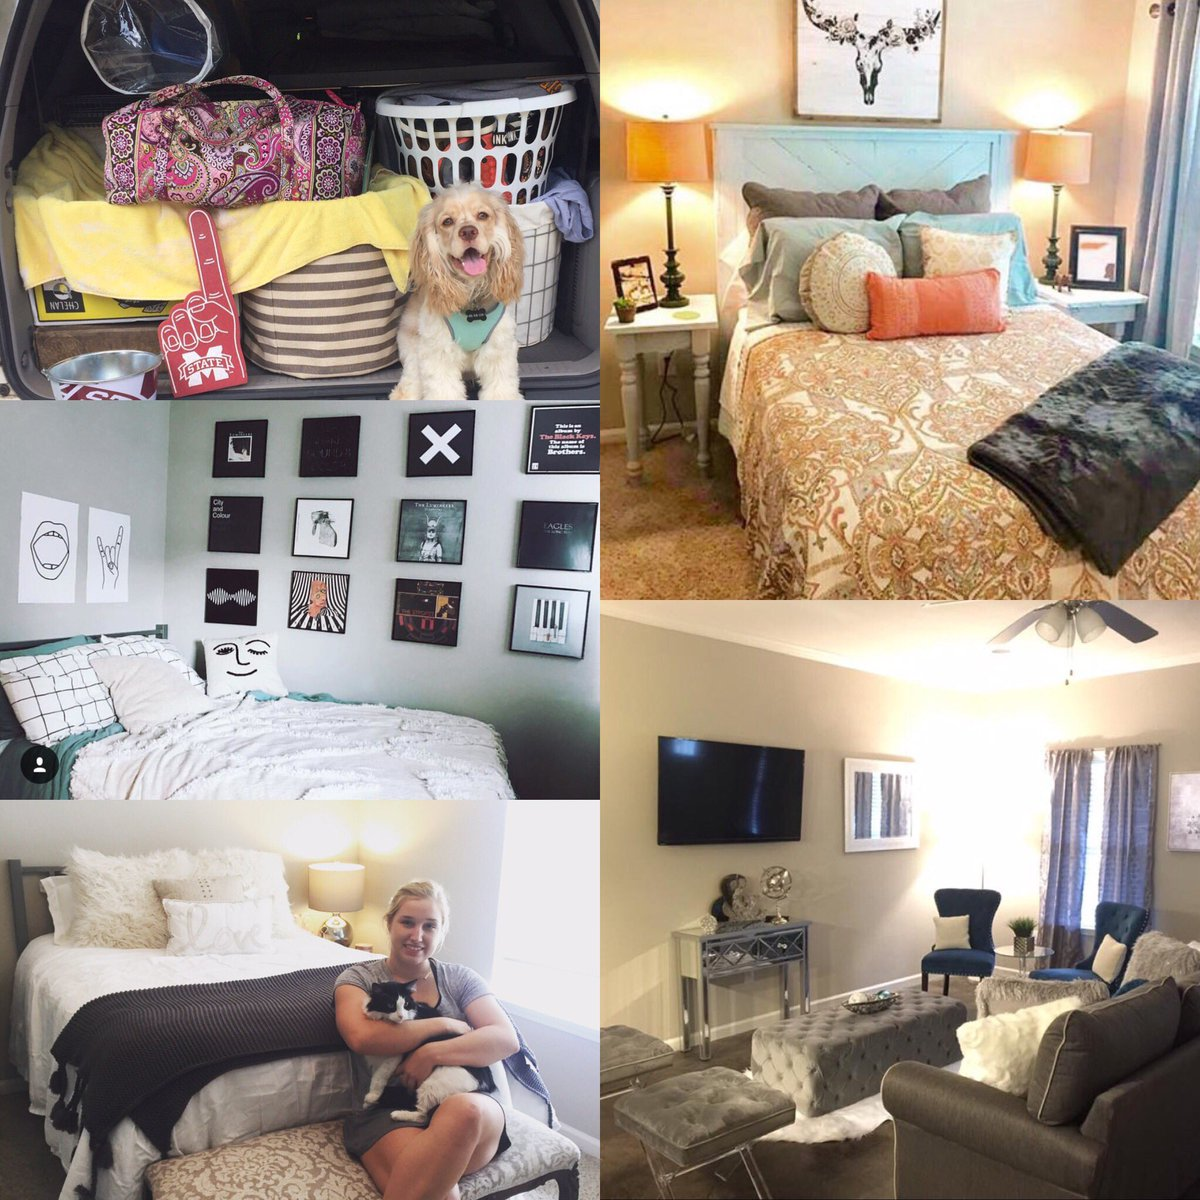 We love seeing all of our amazing residents turning our houses into their home away from home!!  #Style #Comfort #LifeAtAspen<br>http://pic.twitter.com/KY2SZ2Sevz